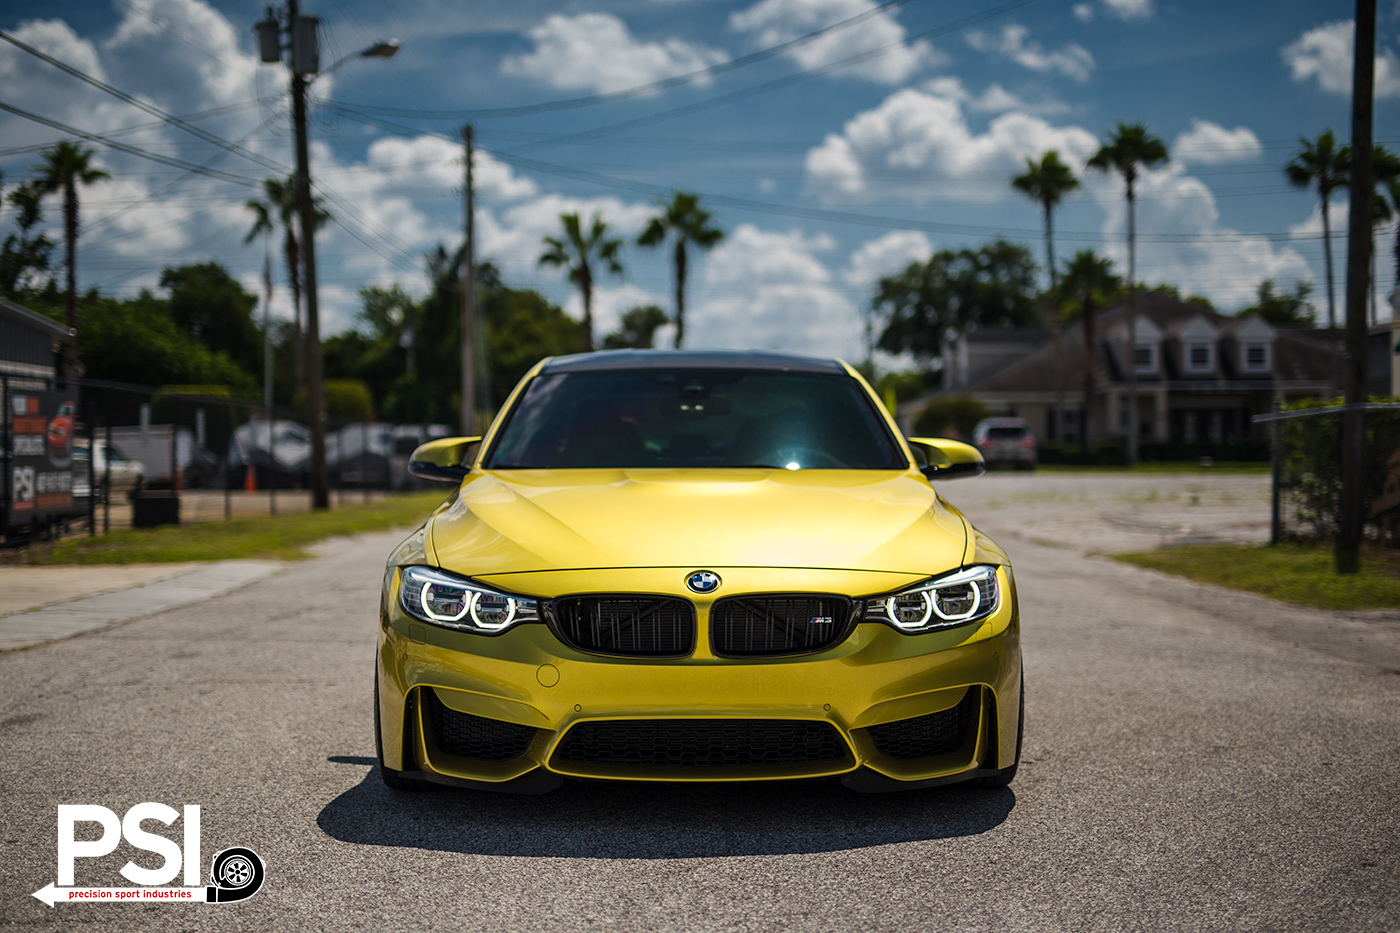 All BMW Models 91 bmw m3 Completely Stock BMW F80 M3 Runs A Quarter Mile